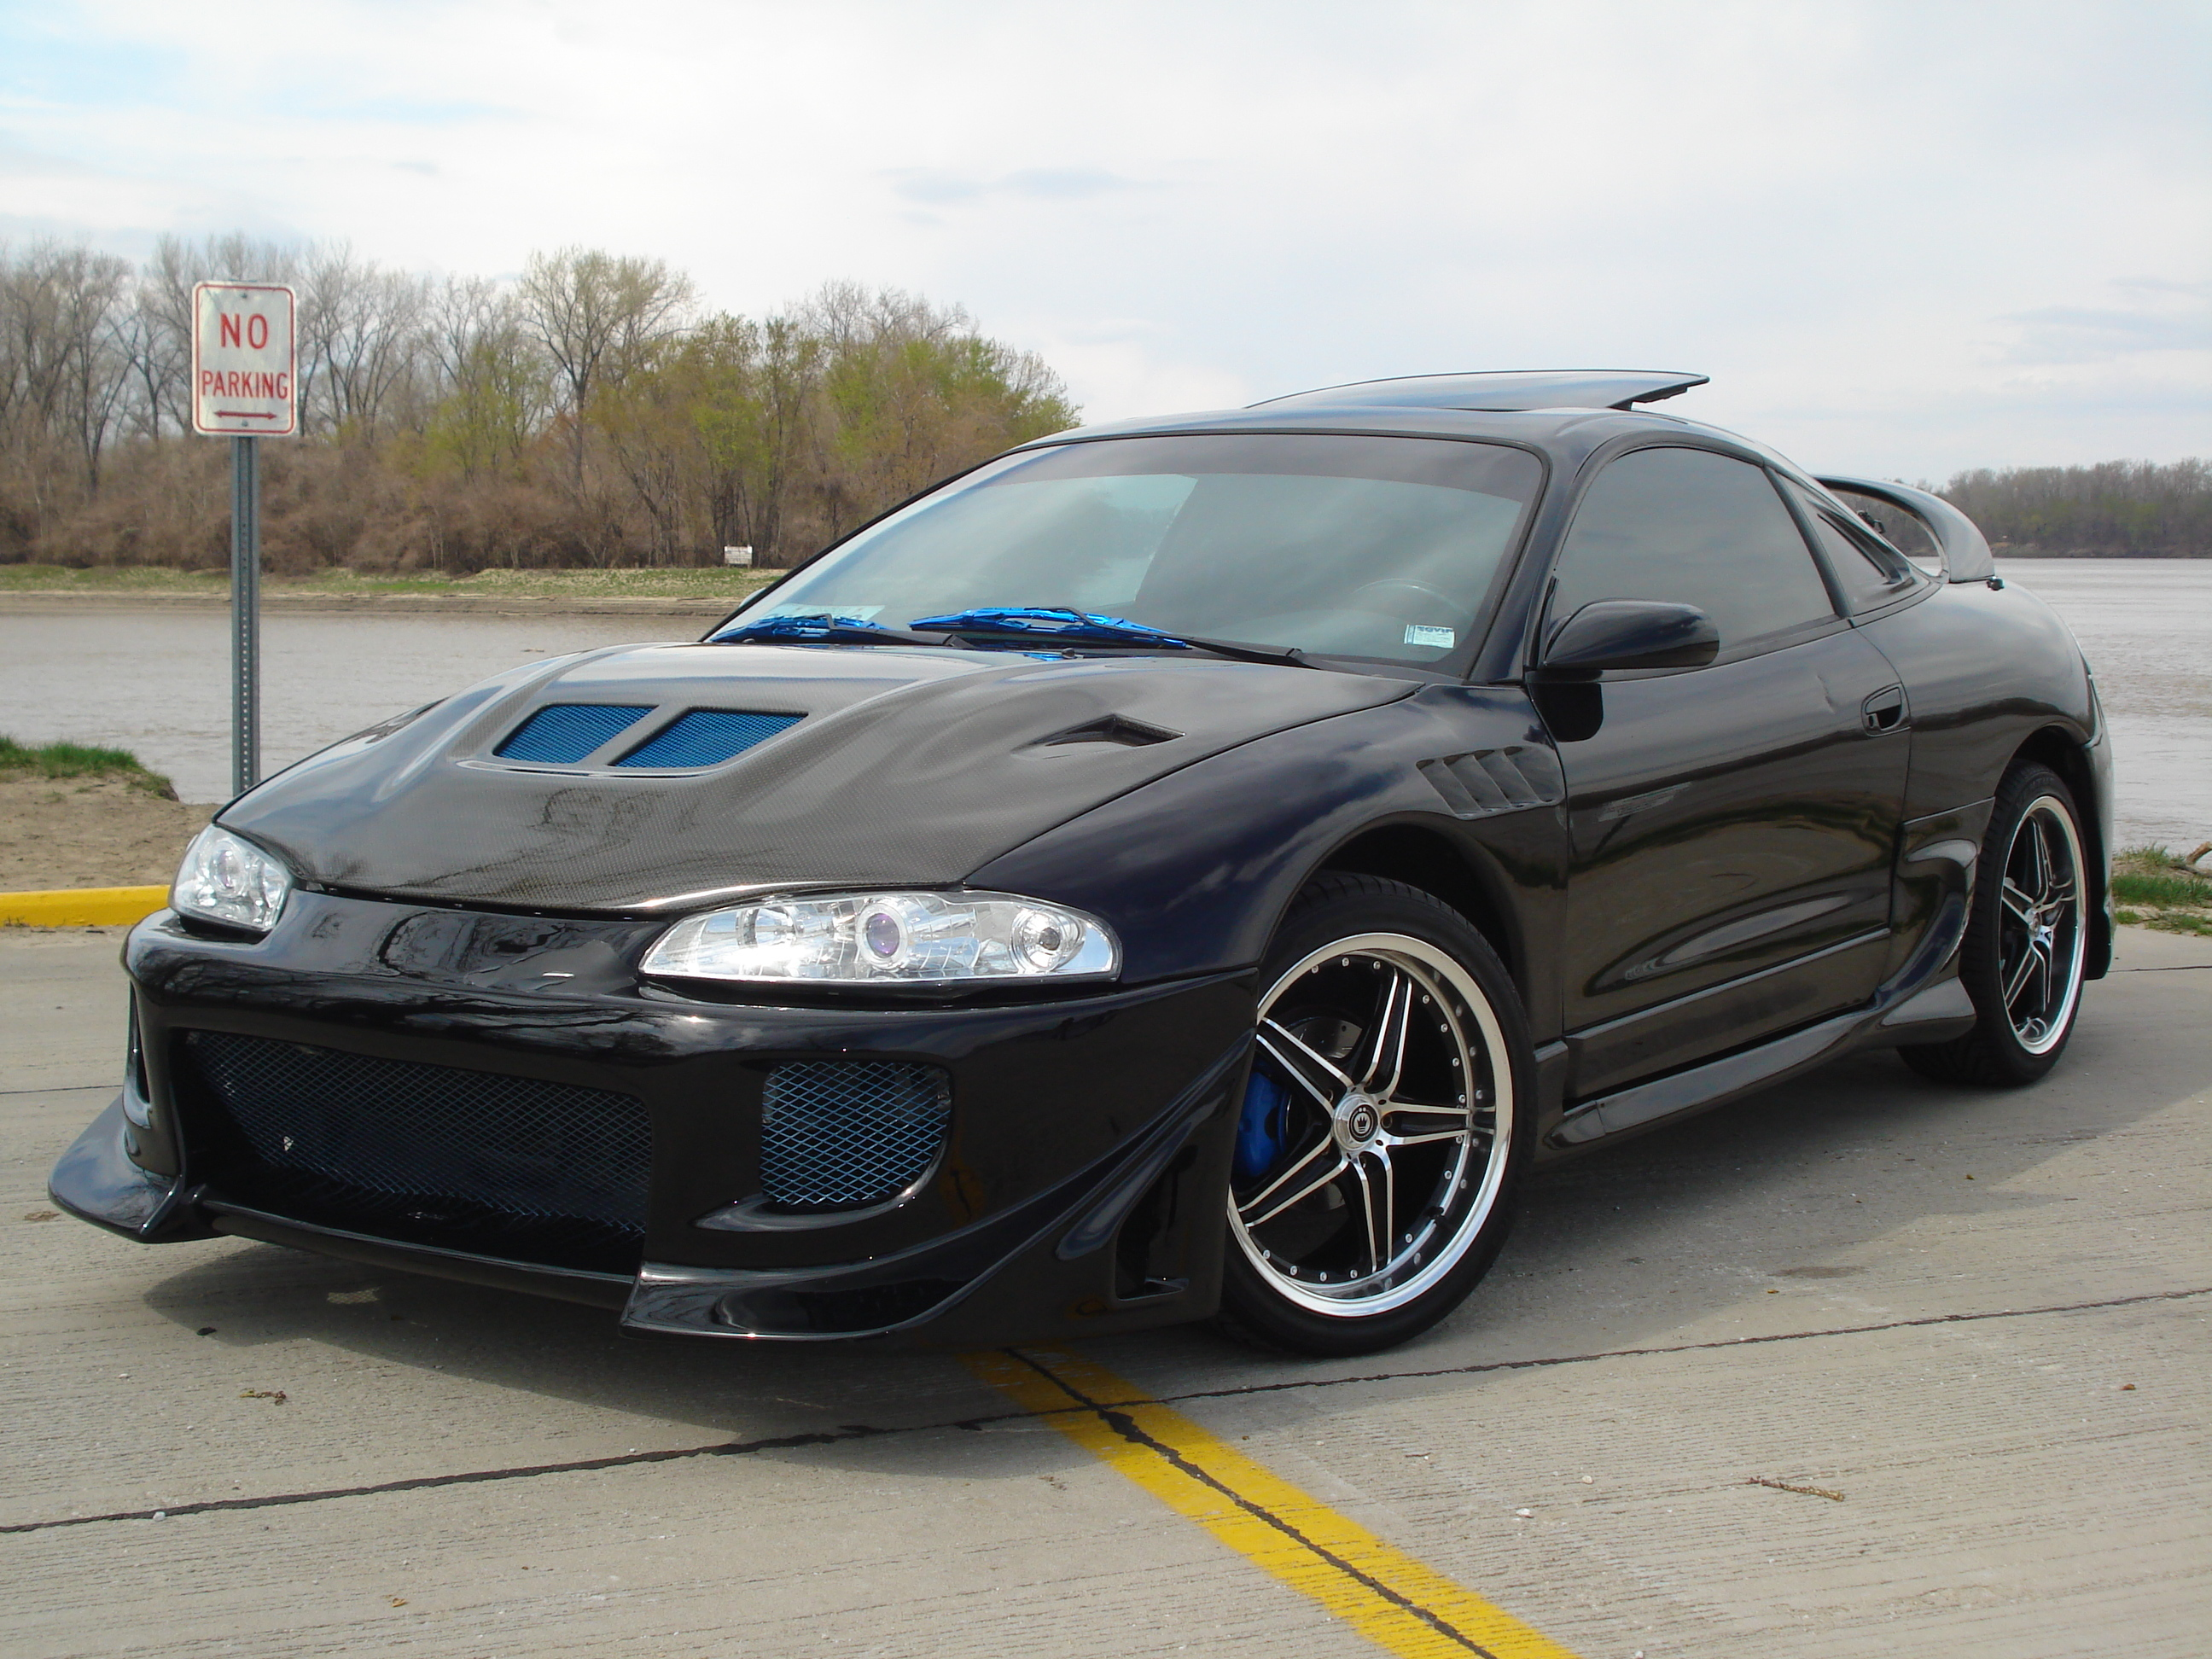 bgovernal77 39 s 1999 mitsubishi eclipse in florissant mo. Black Bedroom Furniture Sets. Home Design Ideas